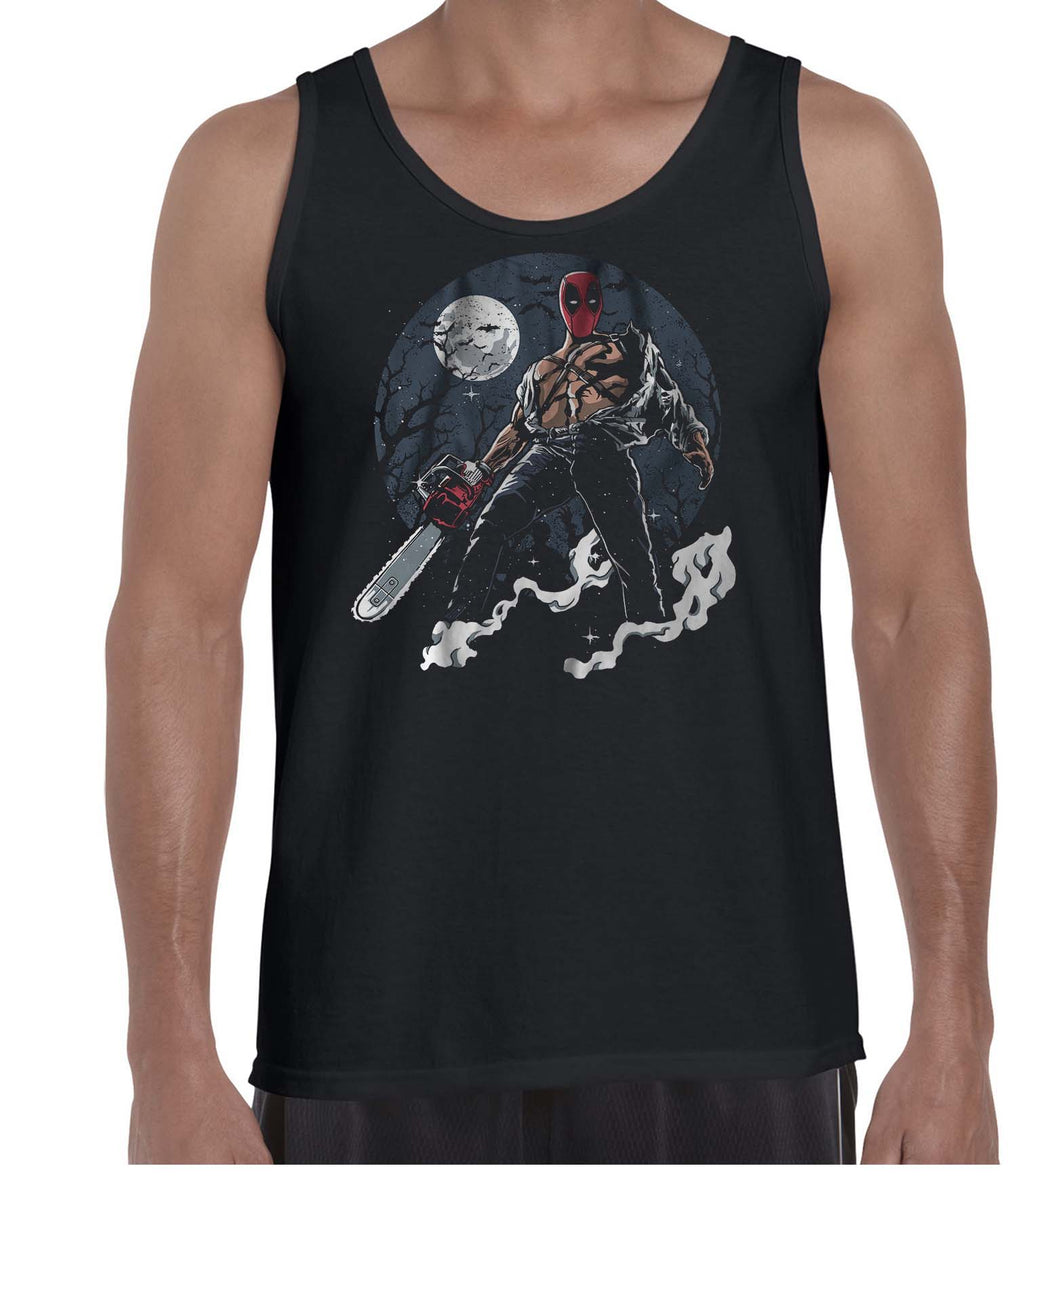 Texas DPool Chainsaw Mashup Vest Tank Top Muscle Shirt Mens 3301